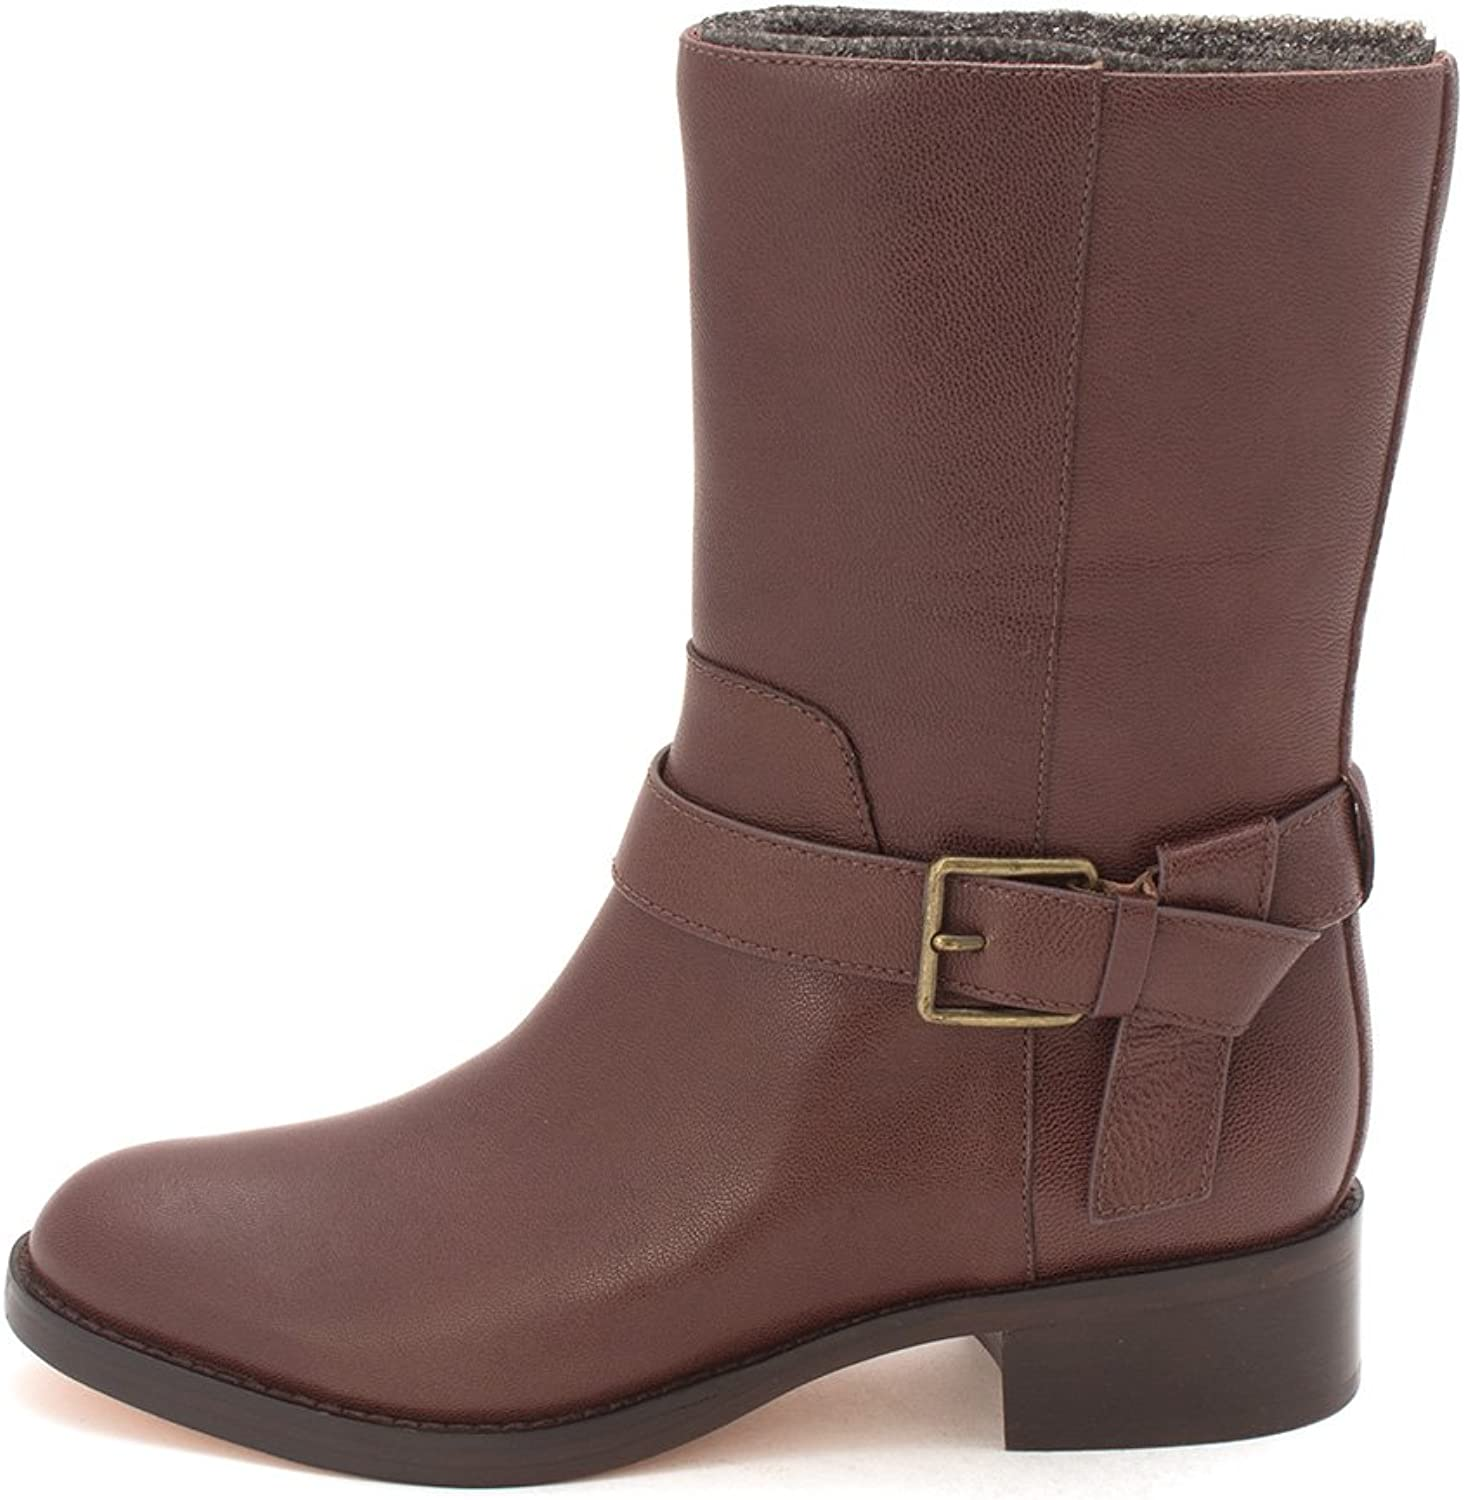 Cole Haan Womens Piercesam Closed Toe Mid-Calf Fashion Boots